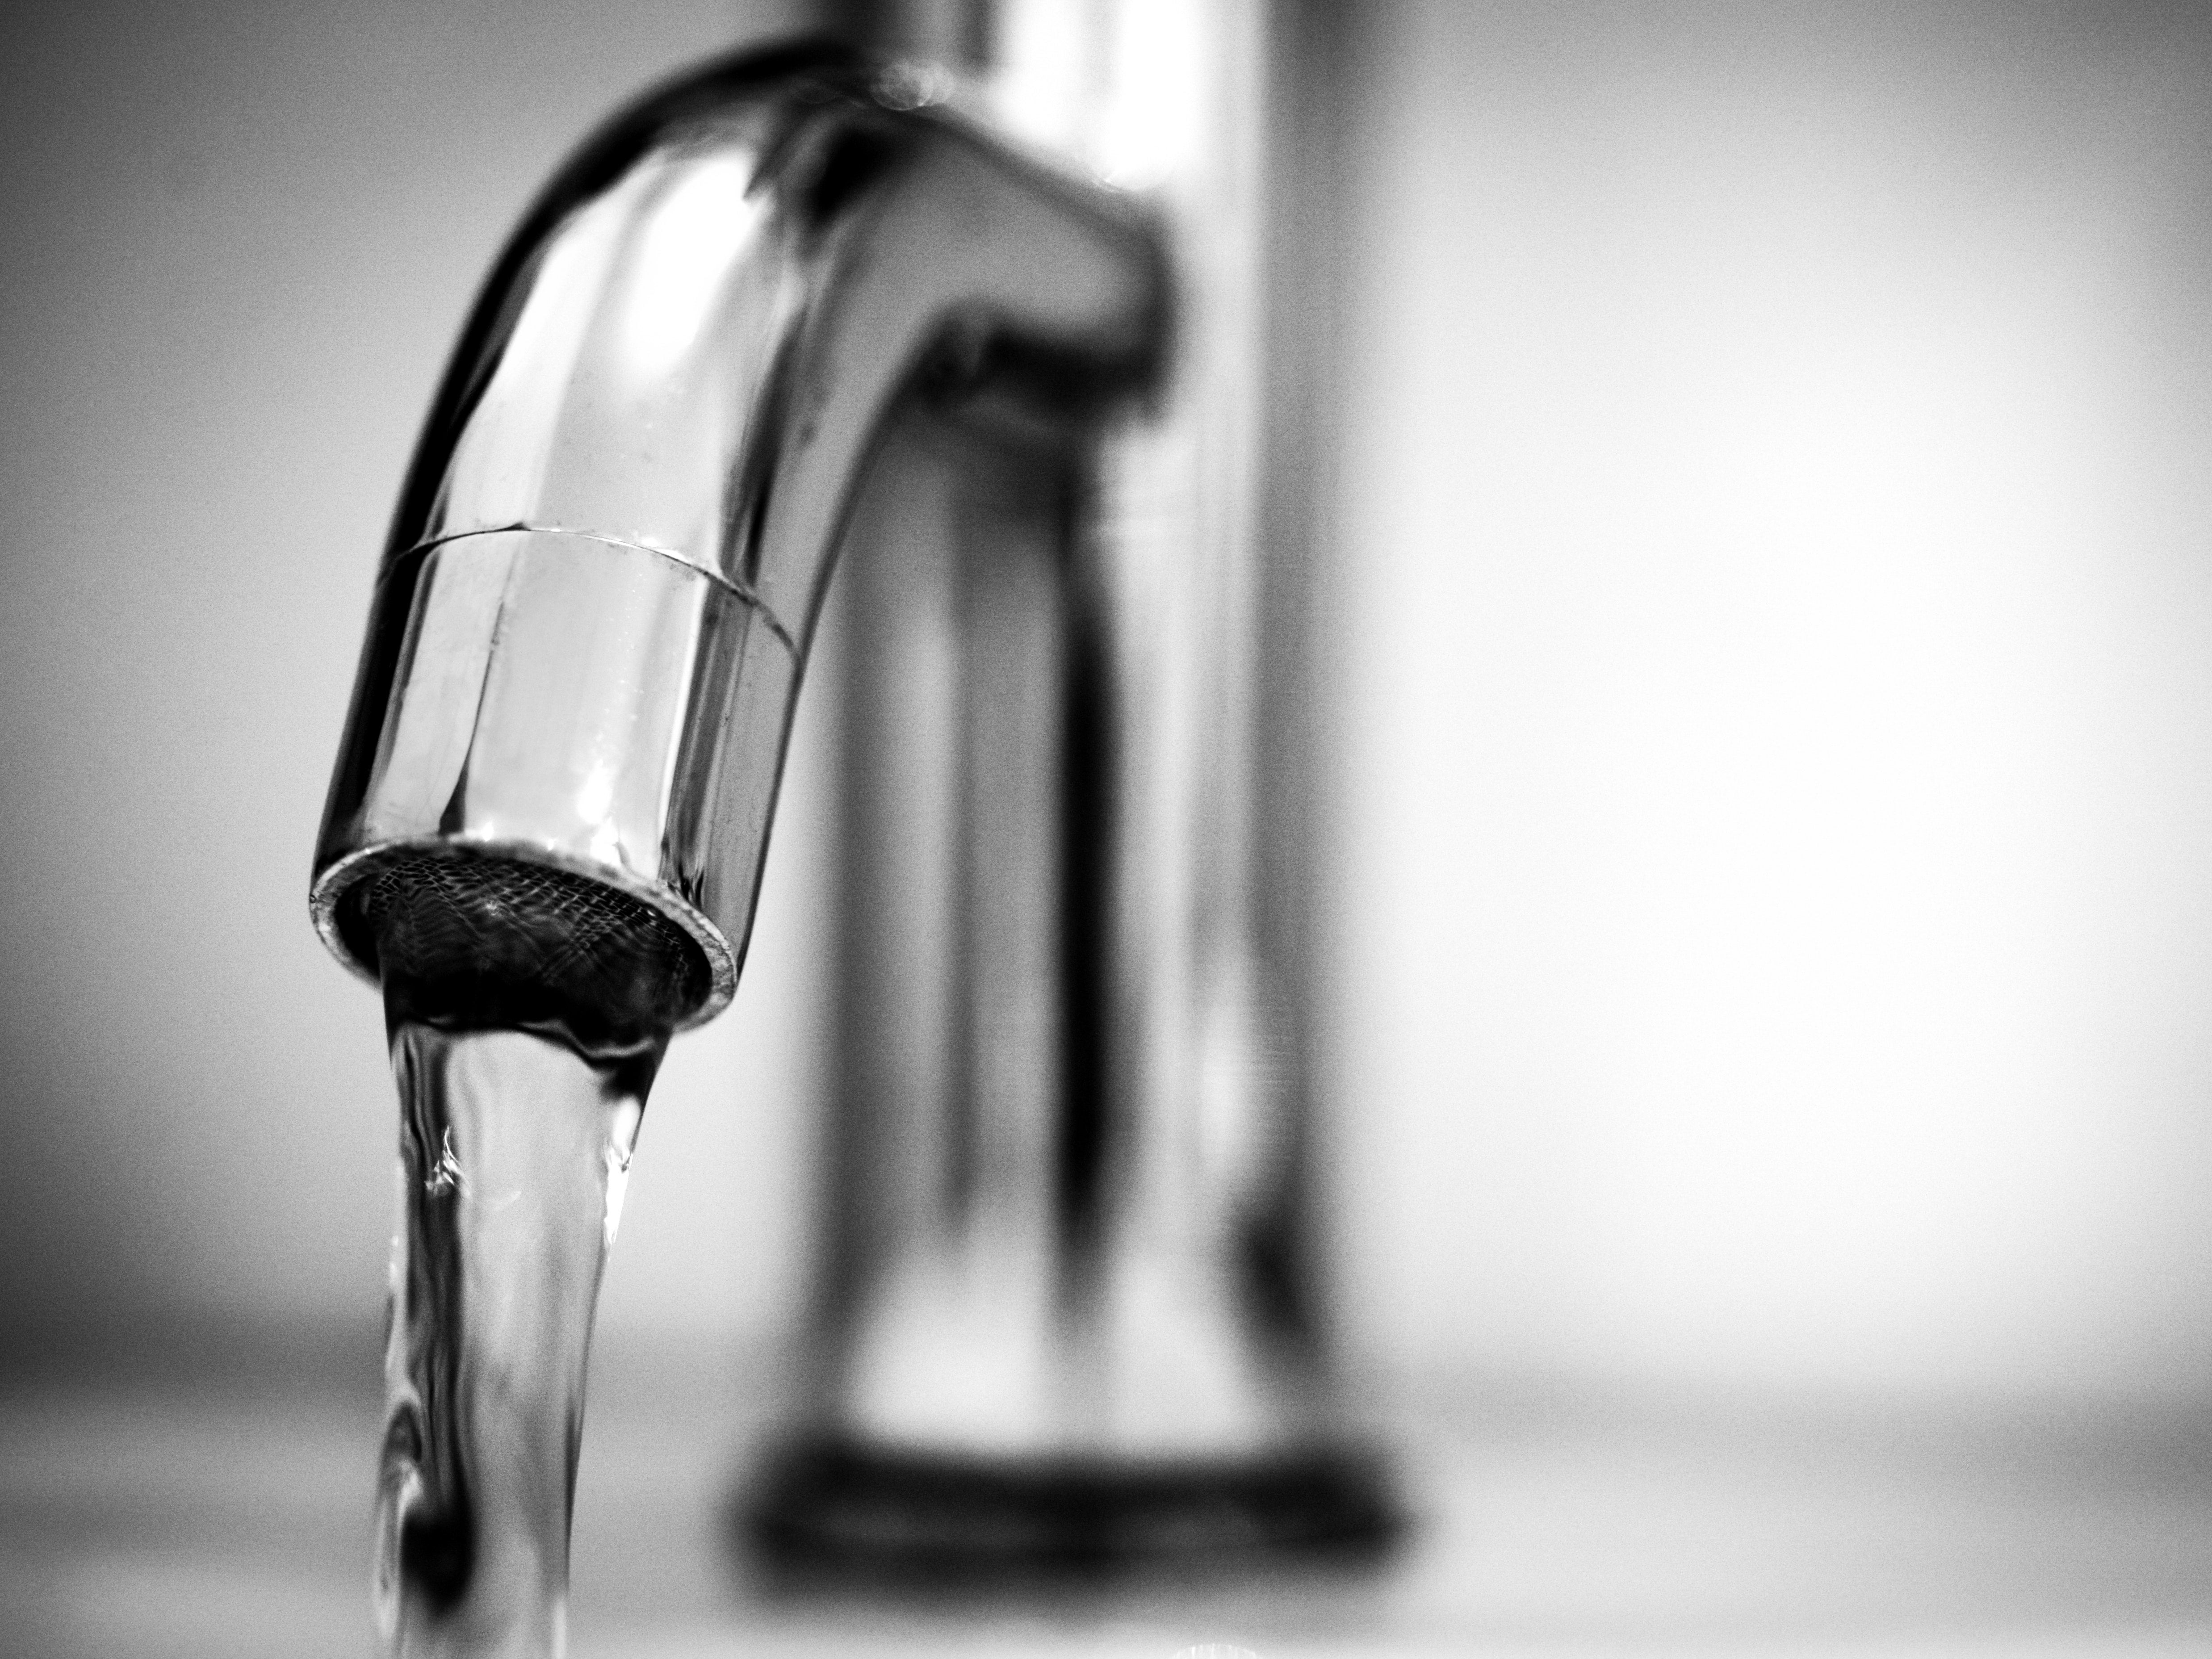 Challenges and opportunities for Queensland's water infrastructure sector